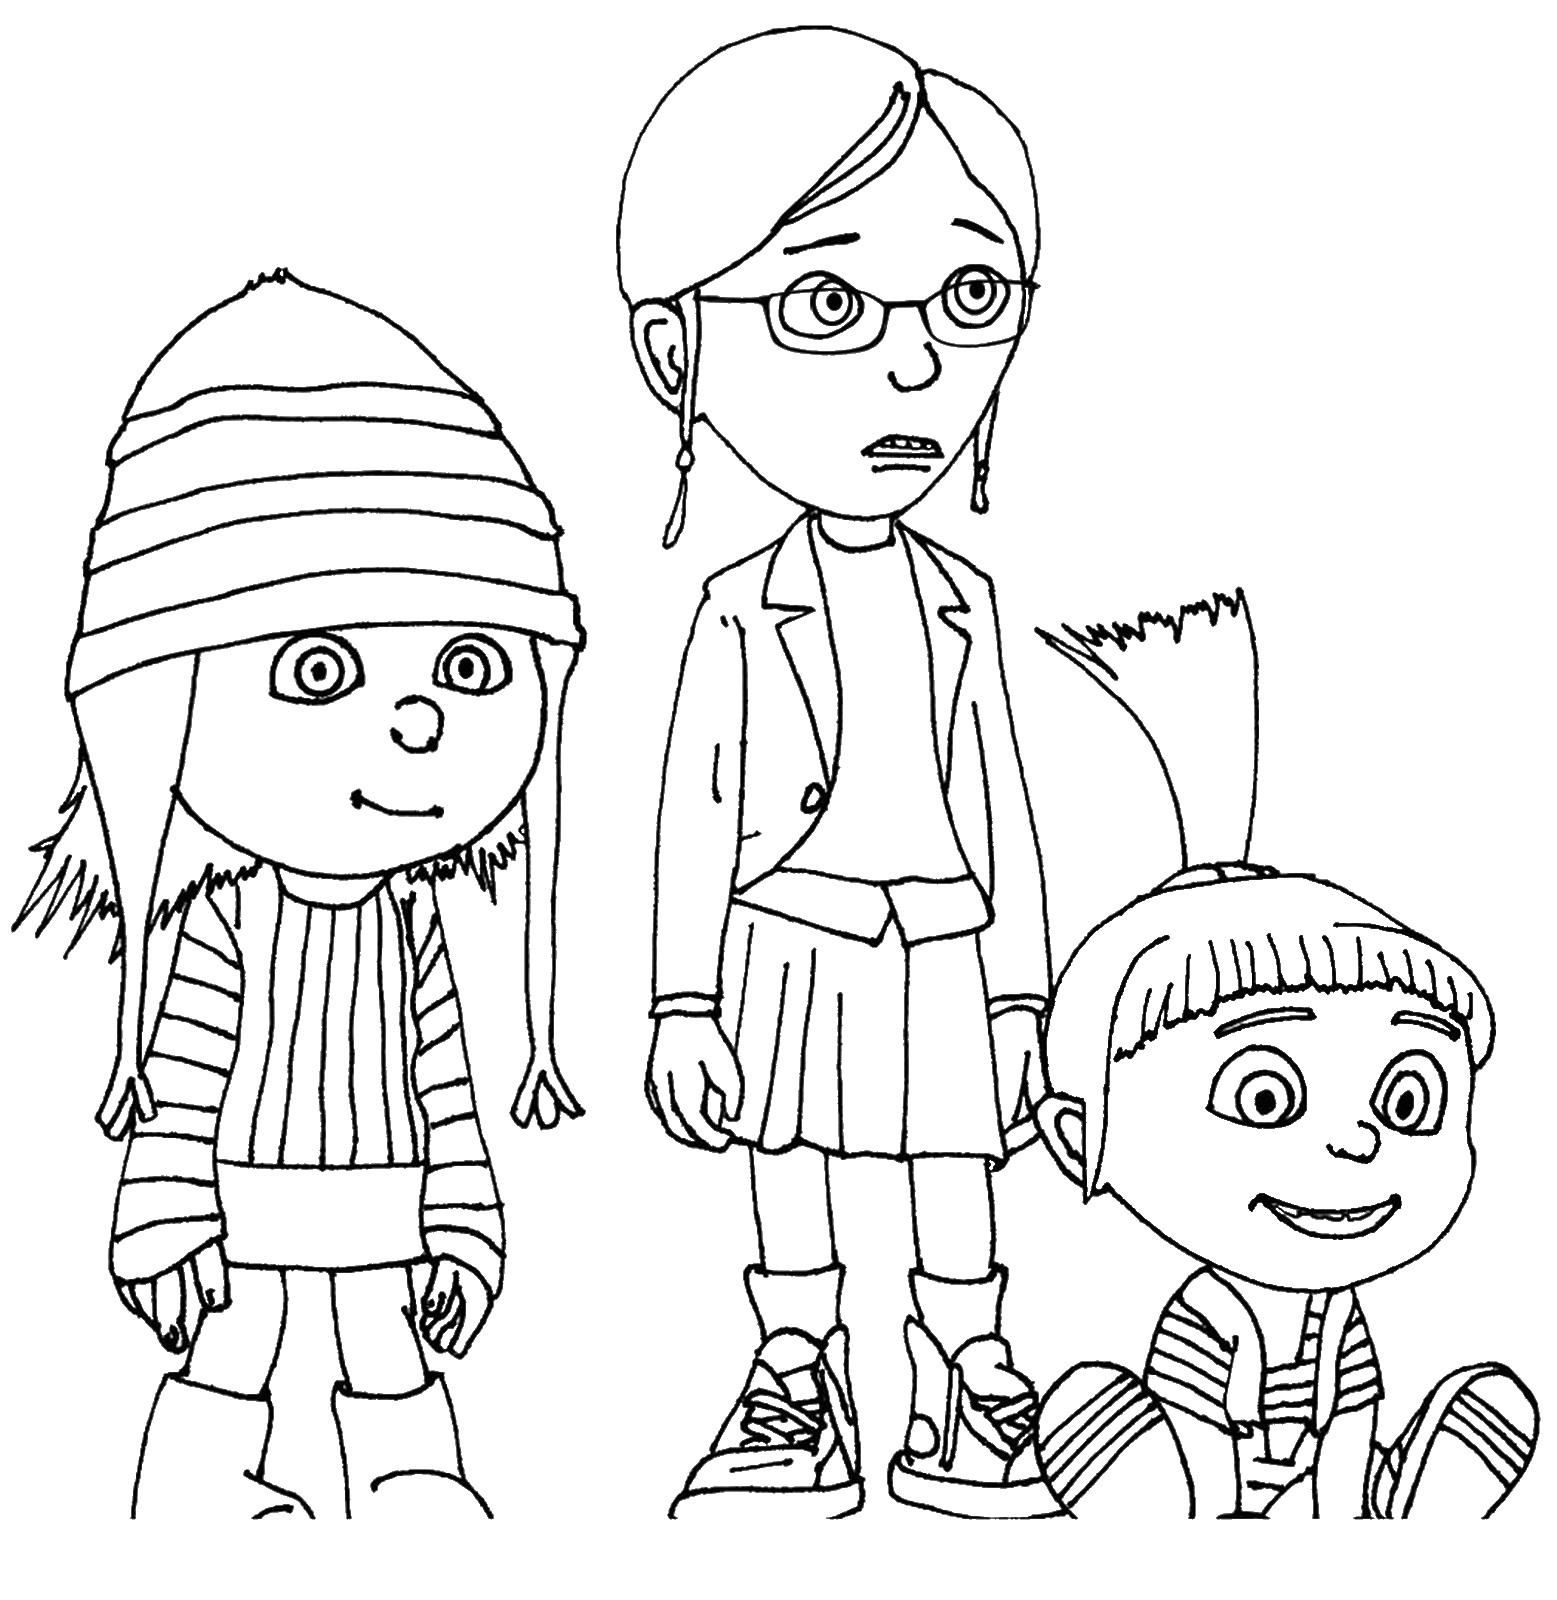 Despicable me coloring pictures